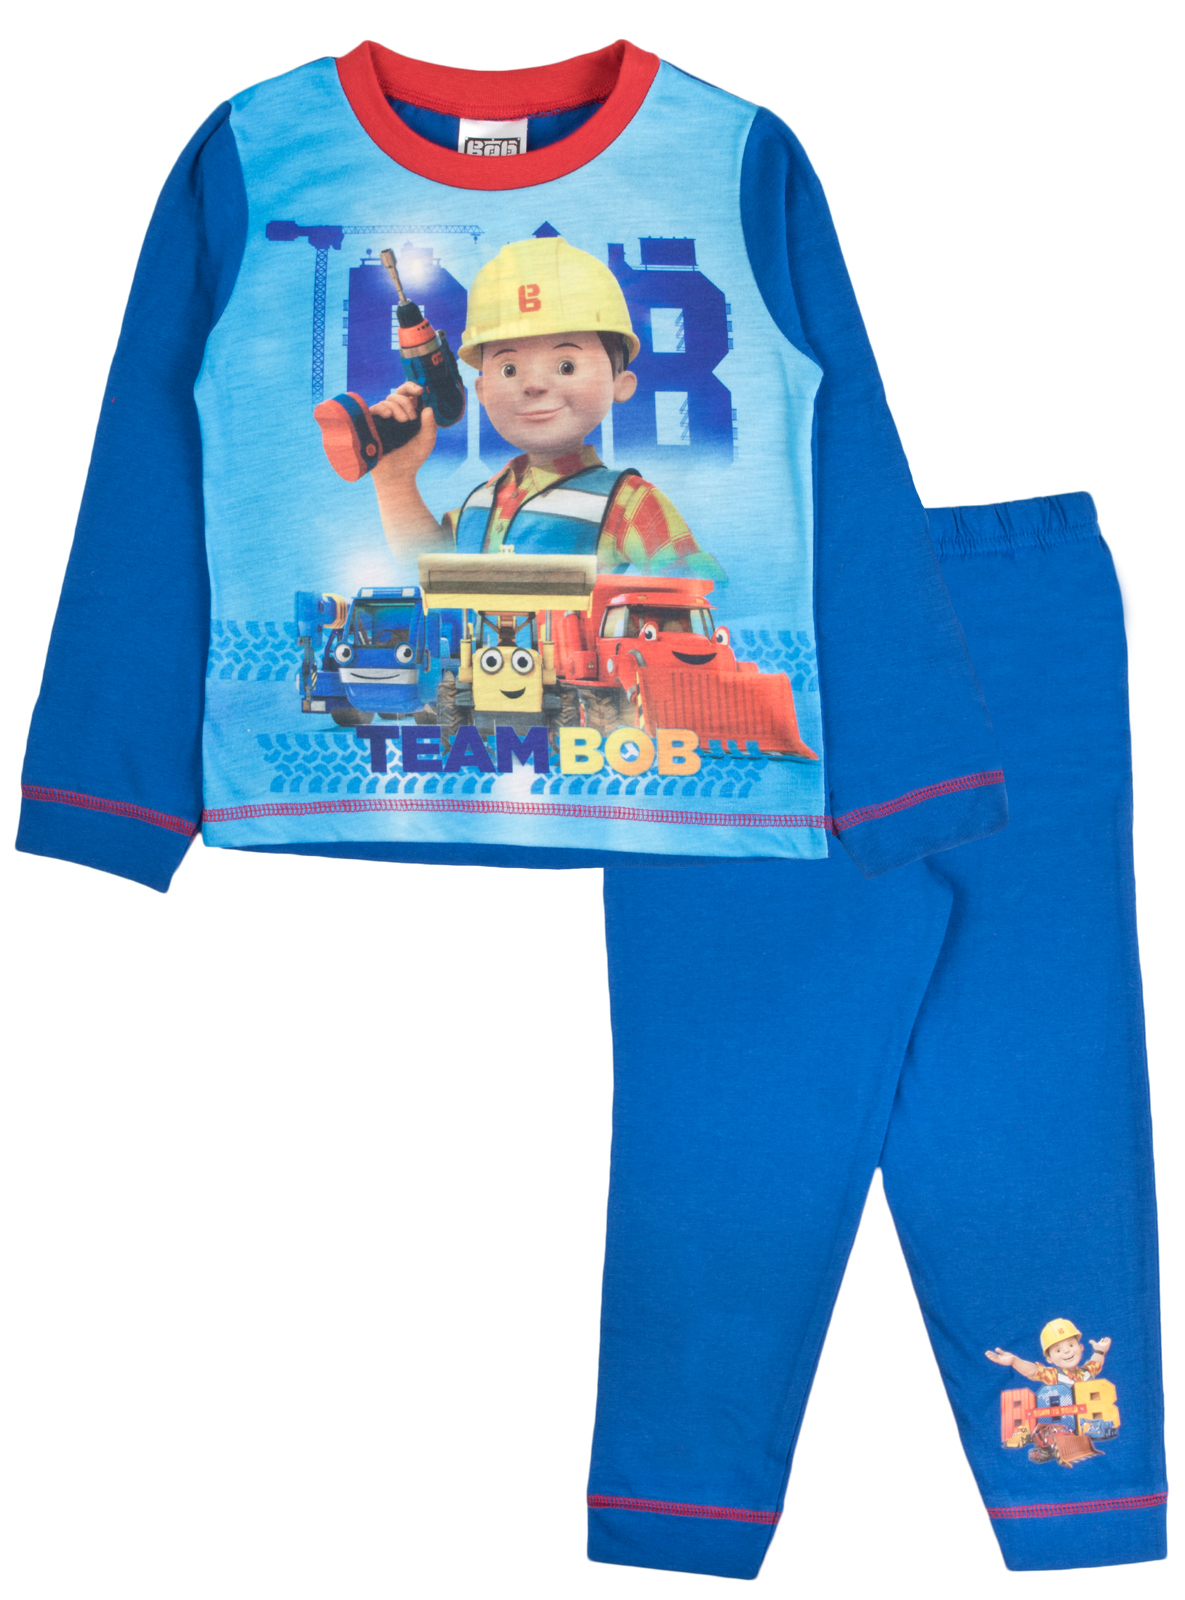 BOB THE BUILDER PYJAMAS BOYS CHILDRENS CHARACTER SLEEPWEAR NIGHTWEAR SET NEW